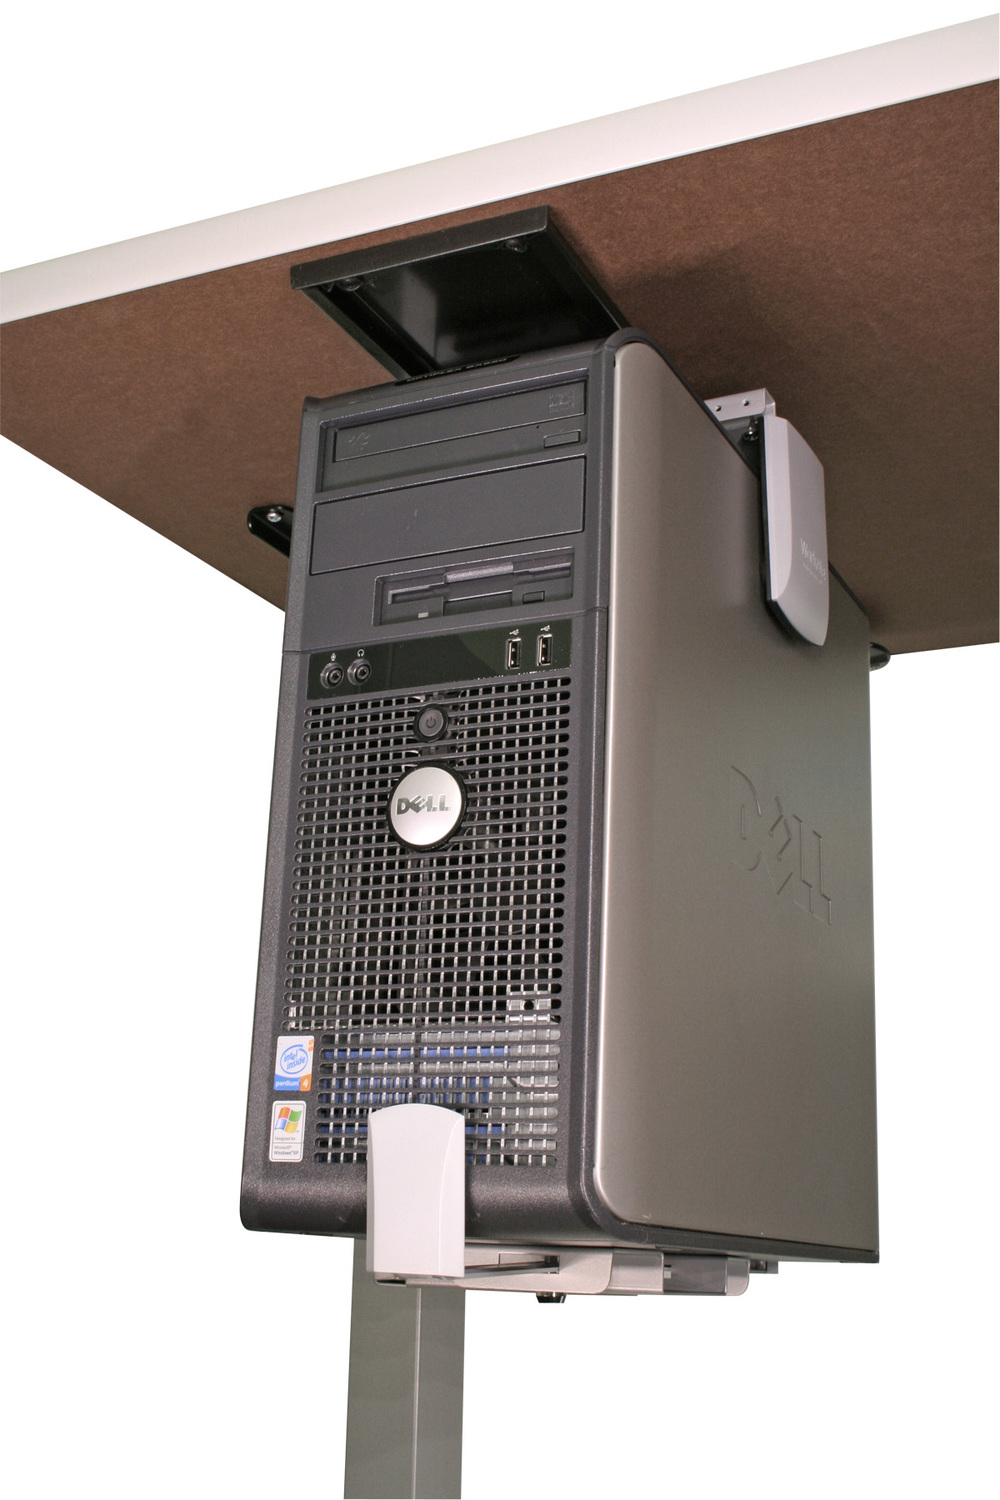 The 920 CPU Holder™ provides a secure mounting solution for today's slim form factor units and mini towers. Workrite CPU holders give you easy access to your computer case, whether located on the floor, or attached to your workcenter.